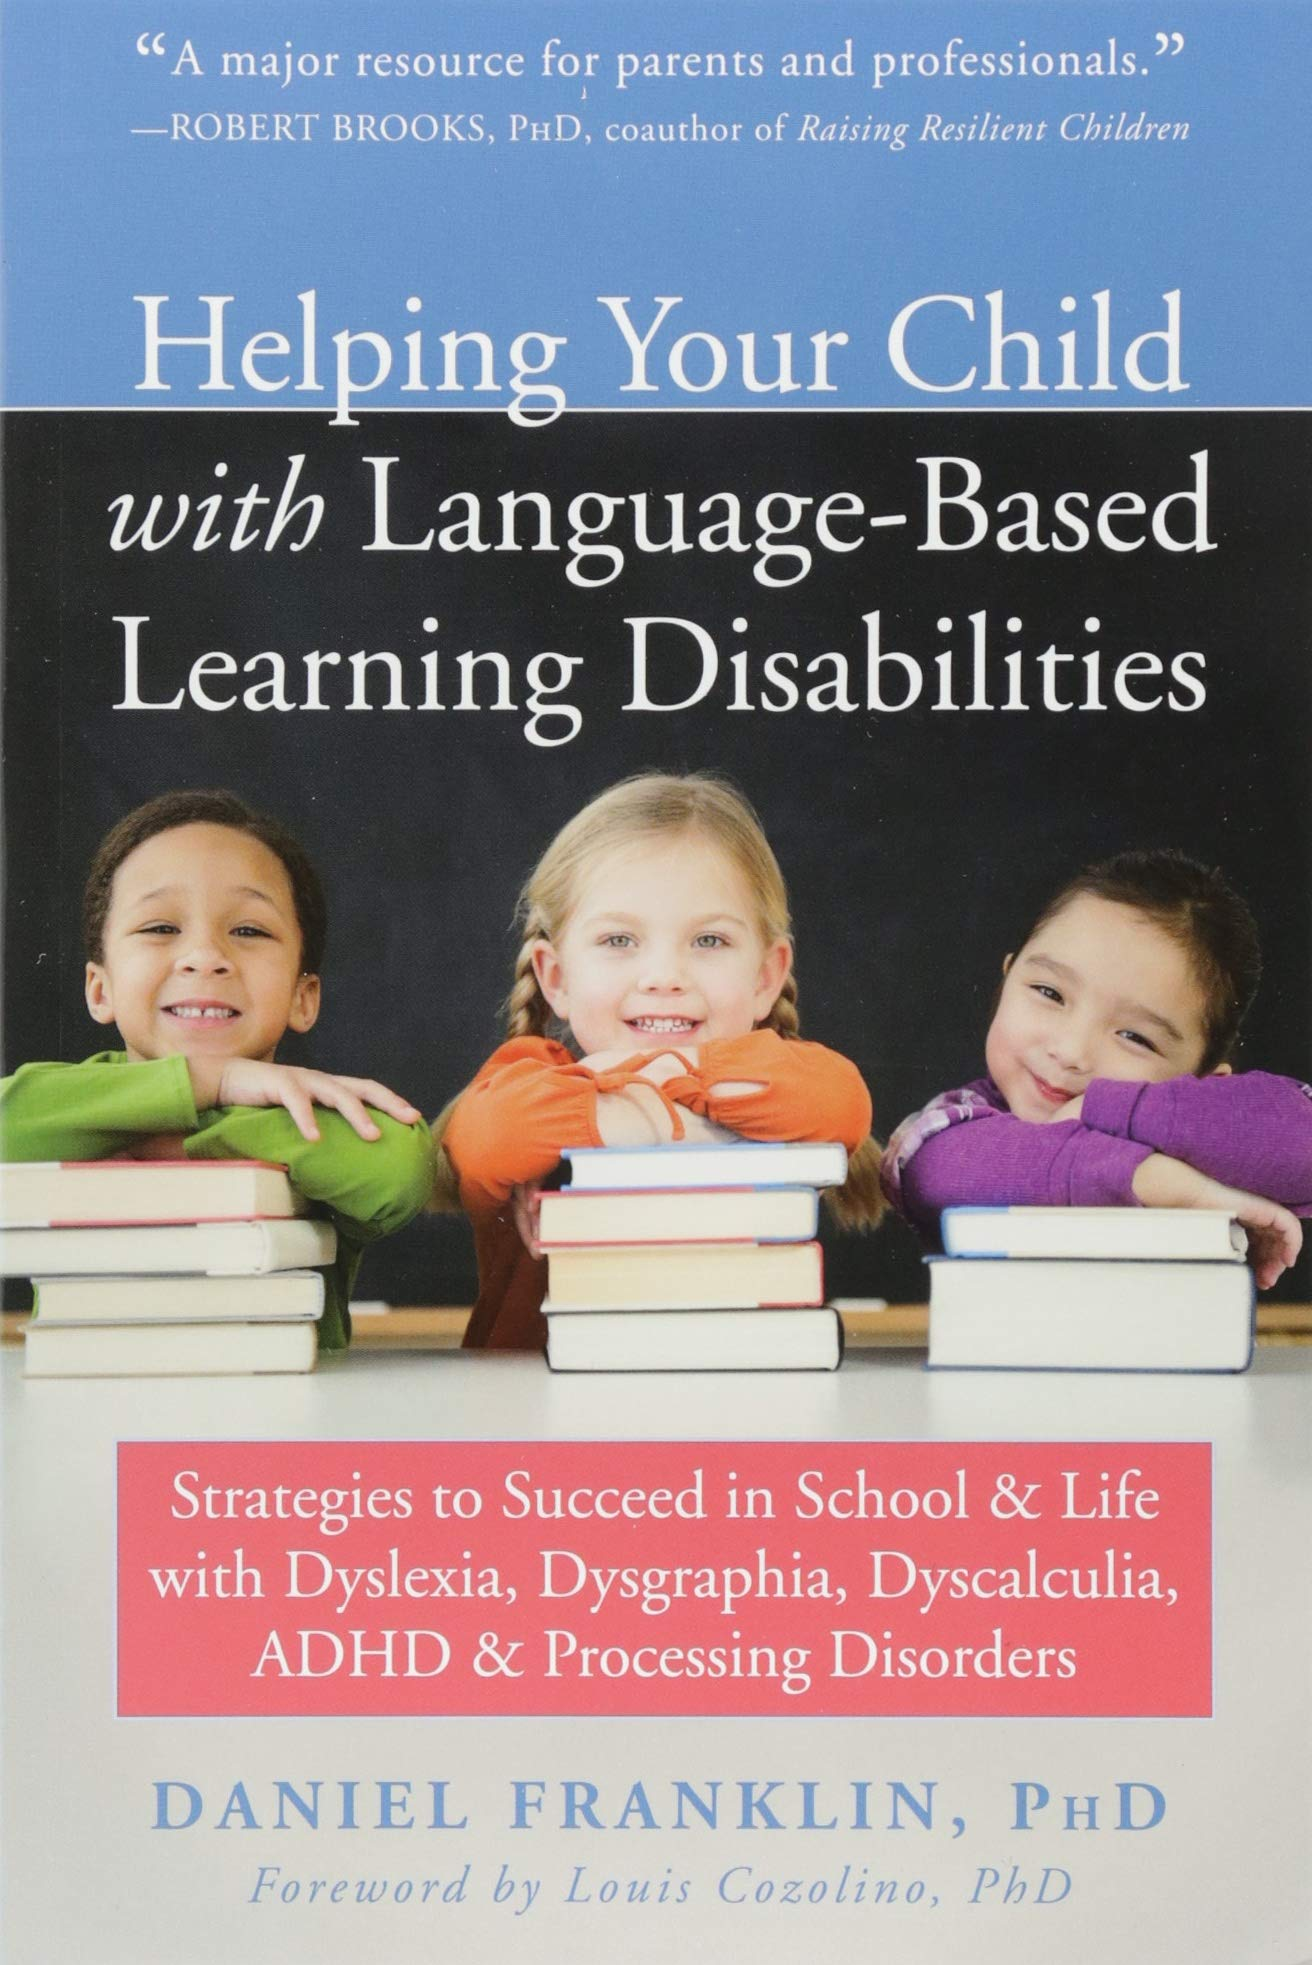 Download Helping Your Child With Language-Based Learning Disabilities: Strategies To Succeed In School And Life With Dyslexia, Dysg... 